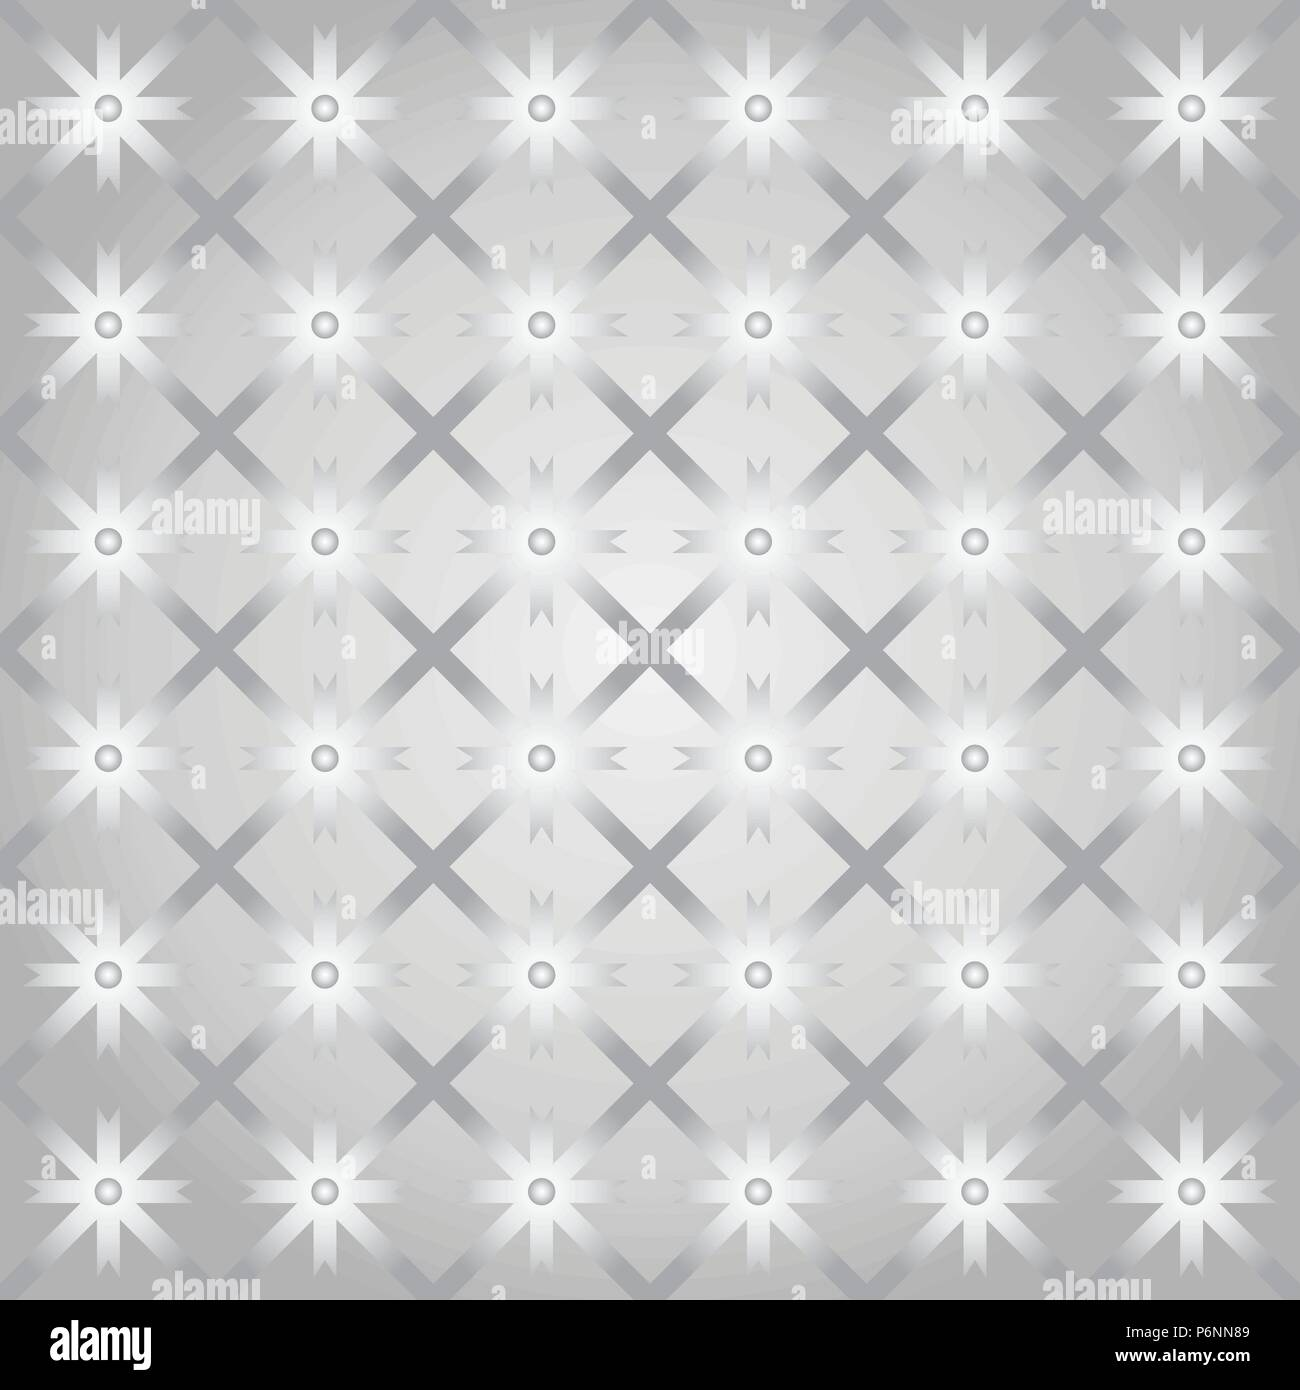 Silver asterisk or crossed line and circle and triangle seamless pattern. Abstract and classic pattern style for design - Stock Vector